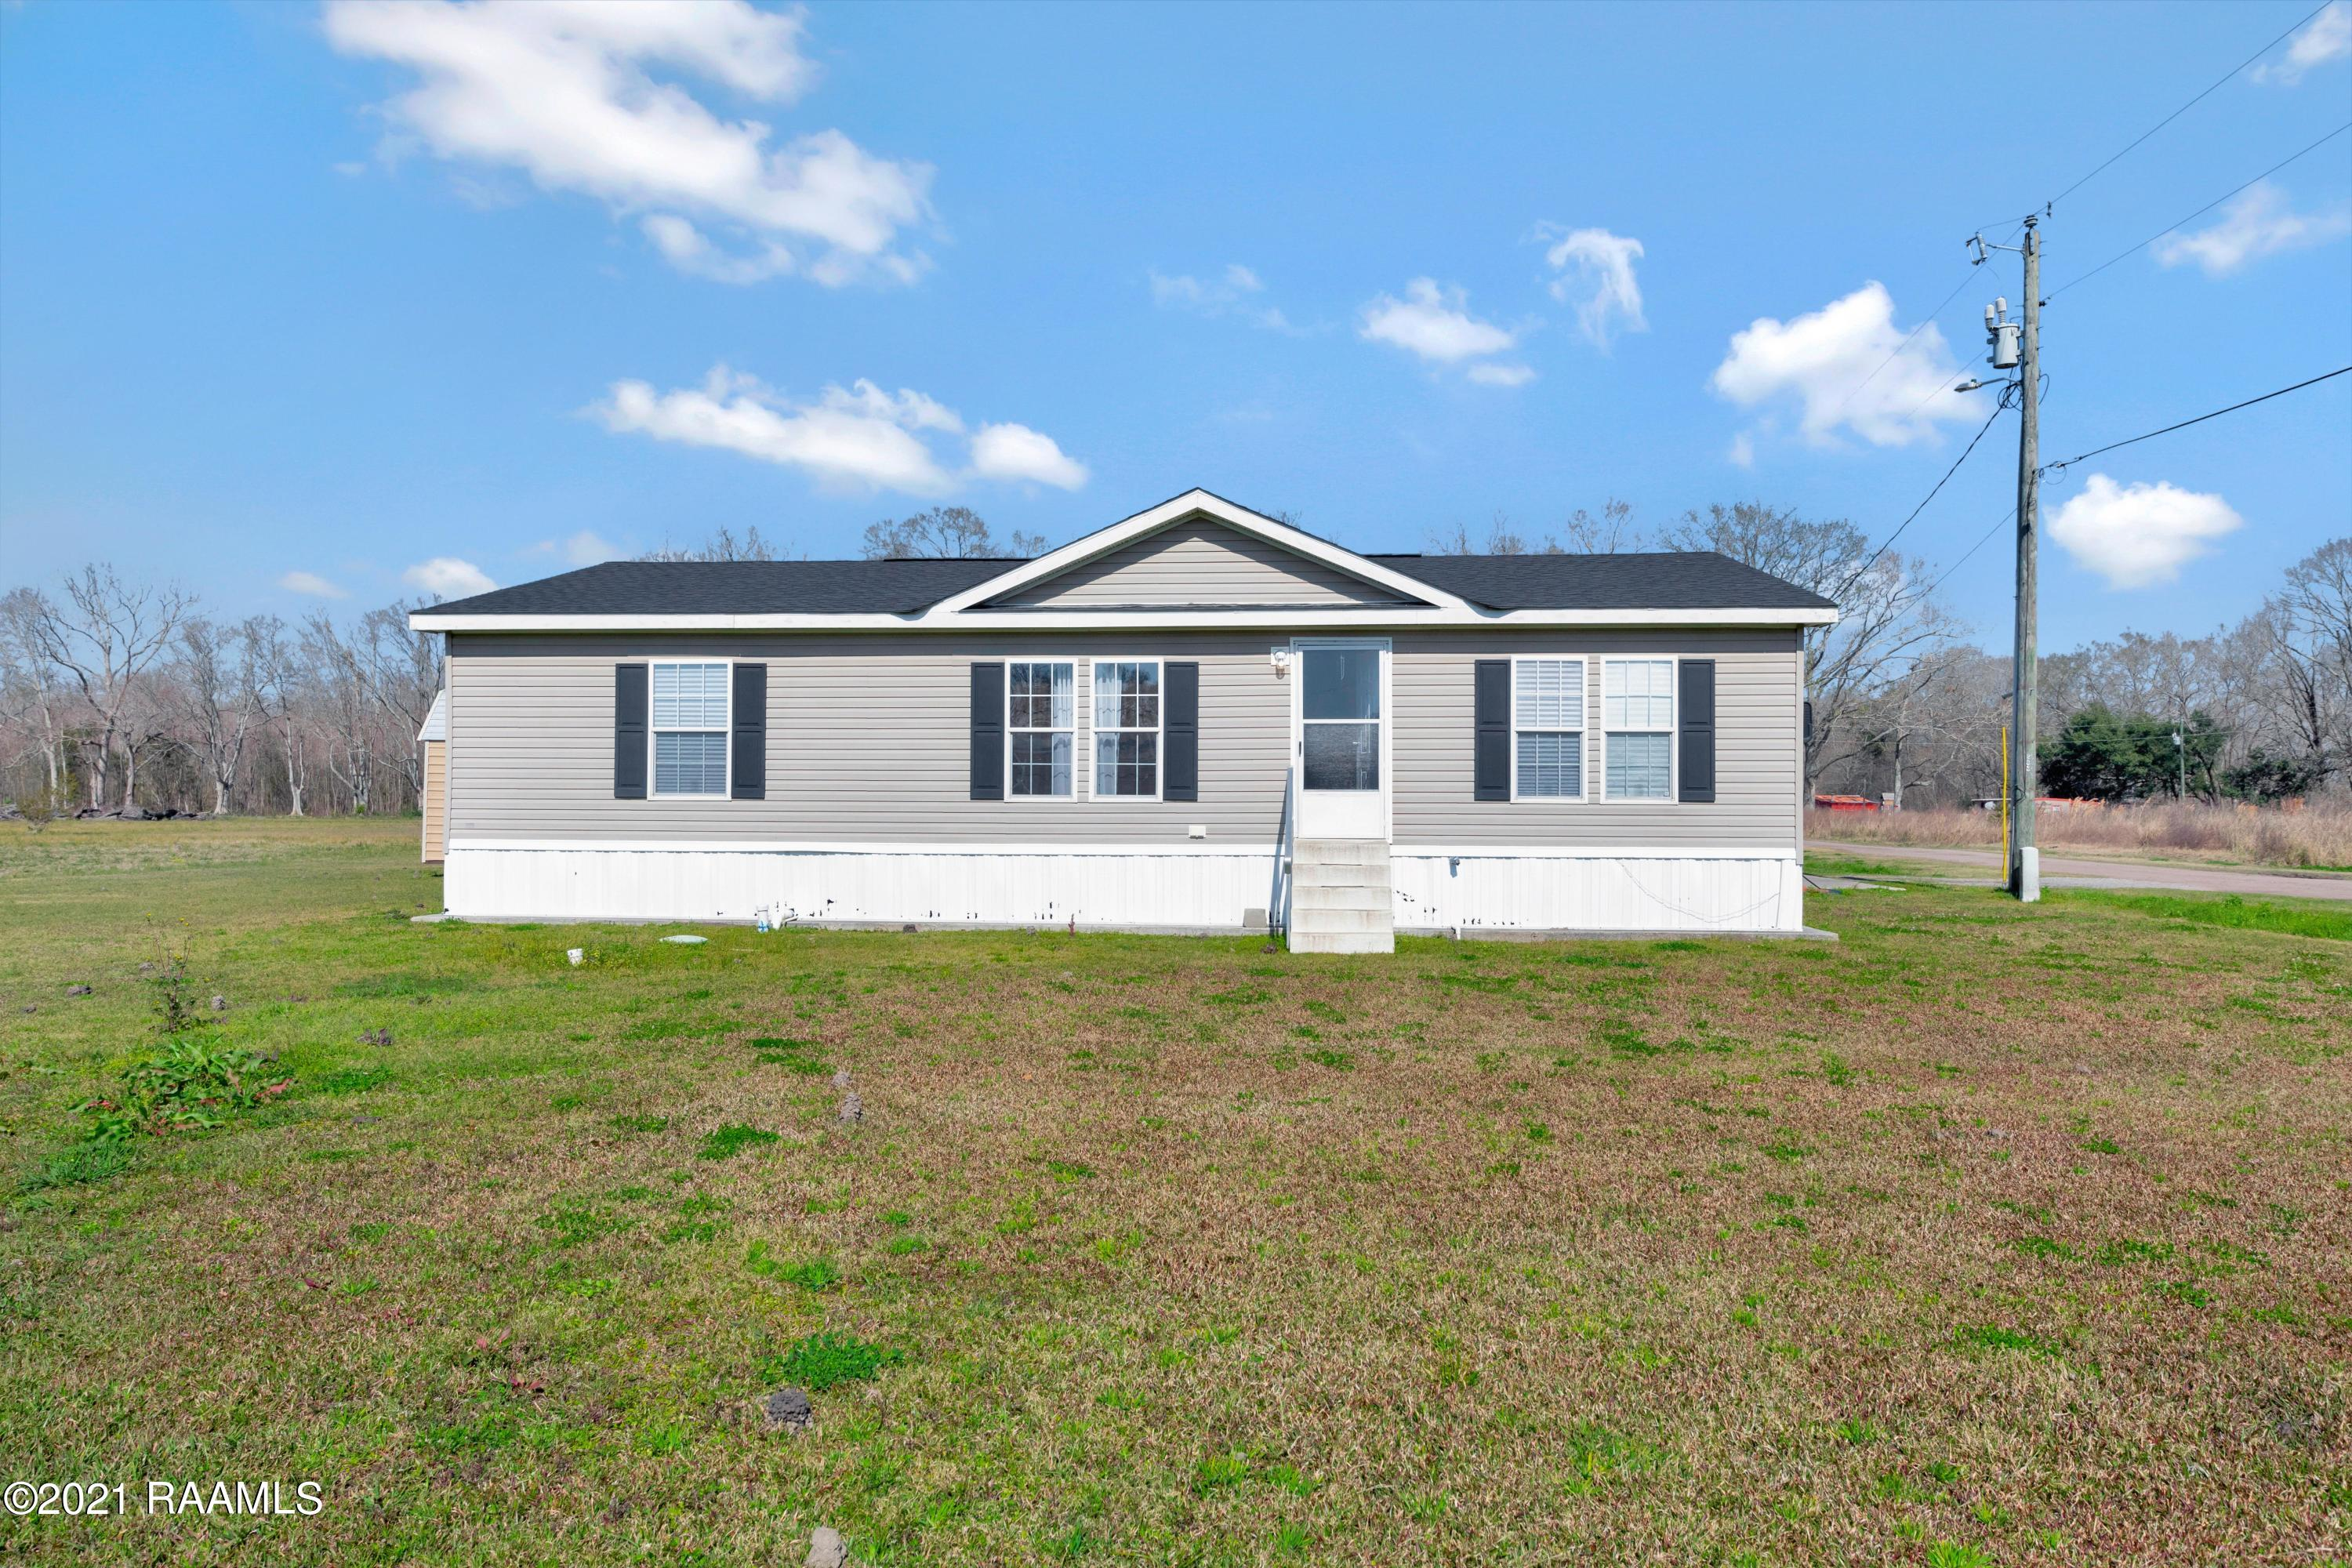 1141d Sam Champagne Road, Breaux Bridge, LA 70517 Photo #1